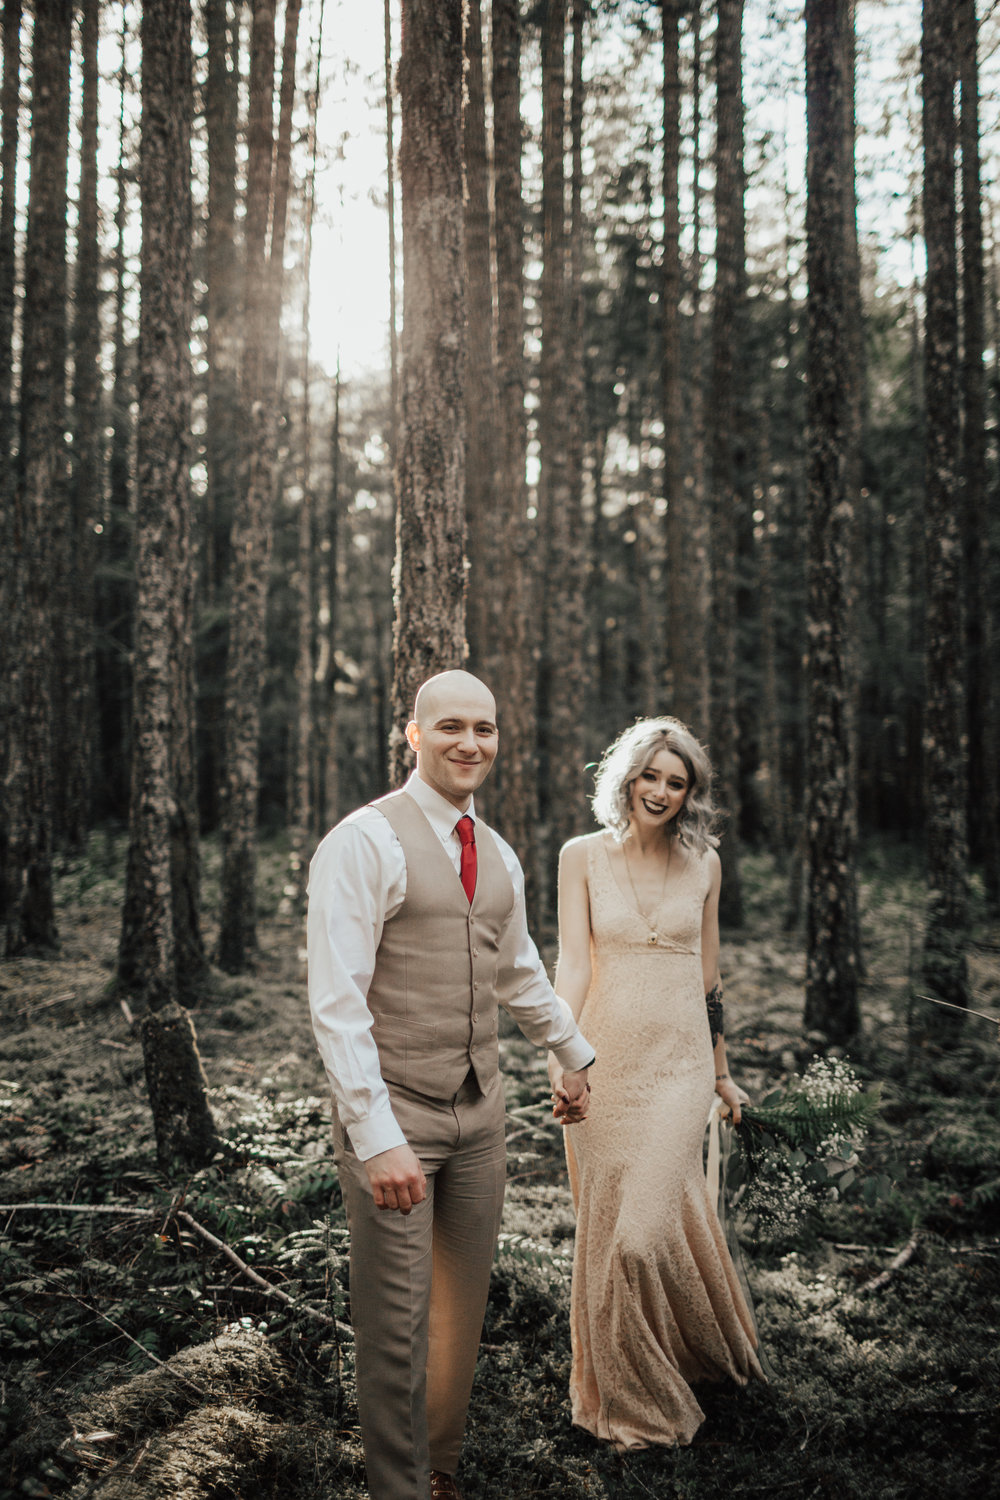 Port Angeles-PNW-Sequim-Portrait-wedding-elopement-photographer-kayladawnphoto-kayla dawn photography-olympic peninsula-portraiture23.jpg